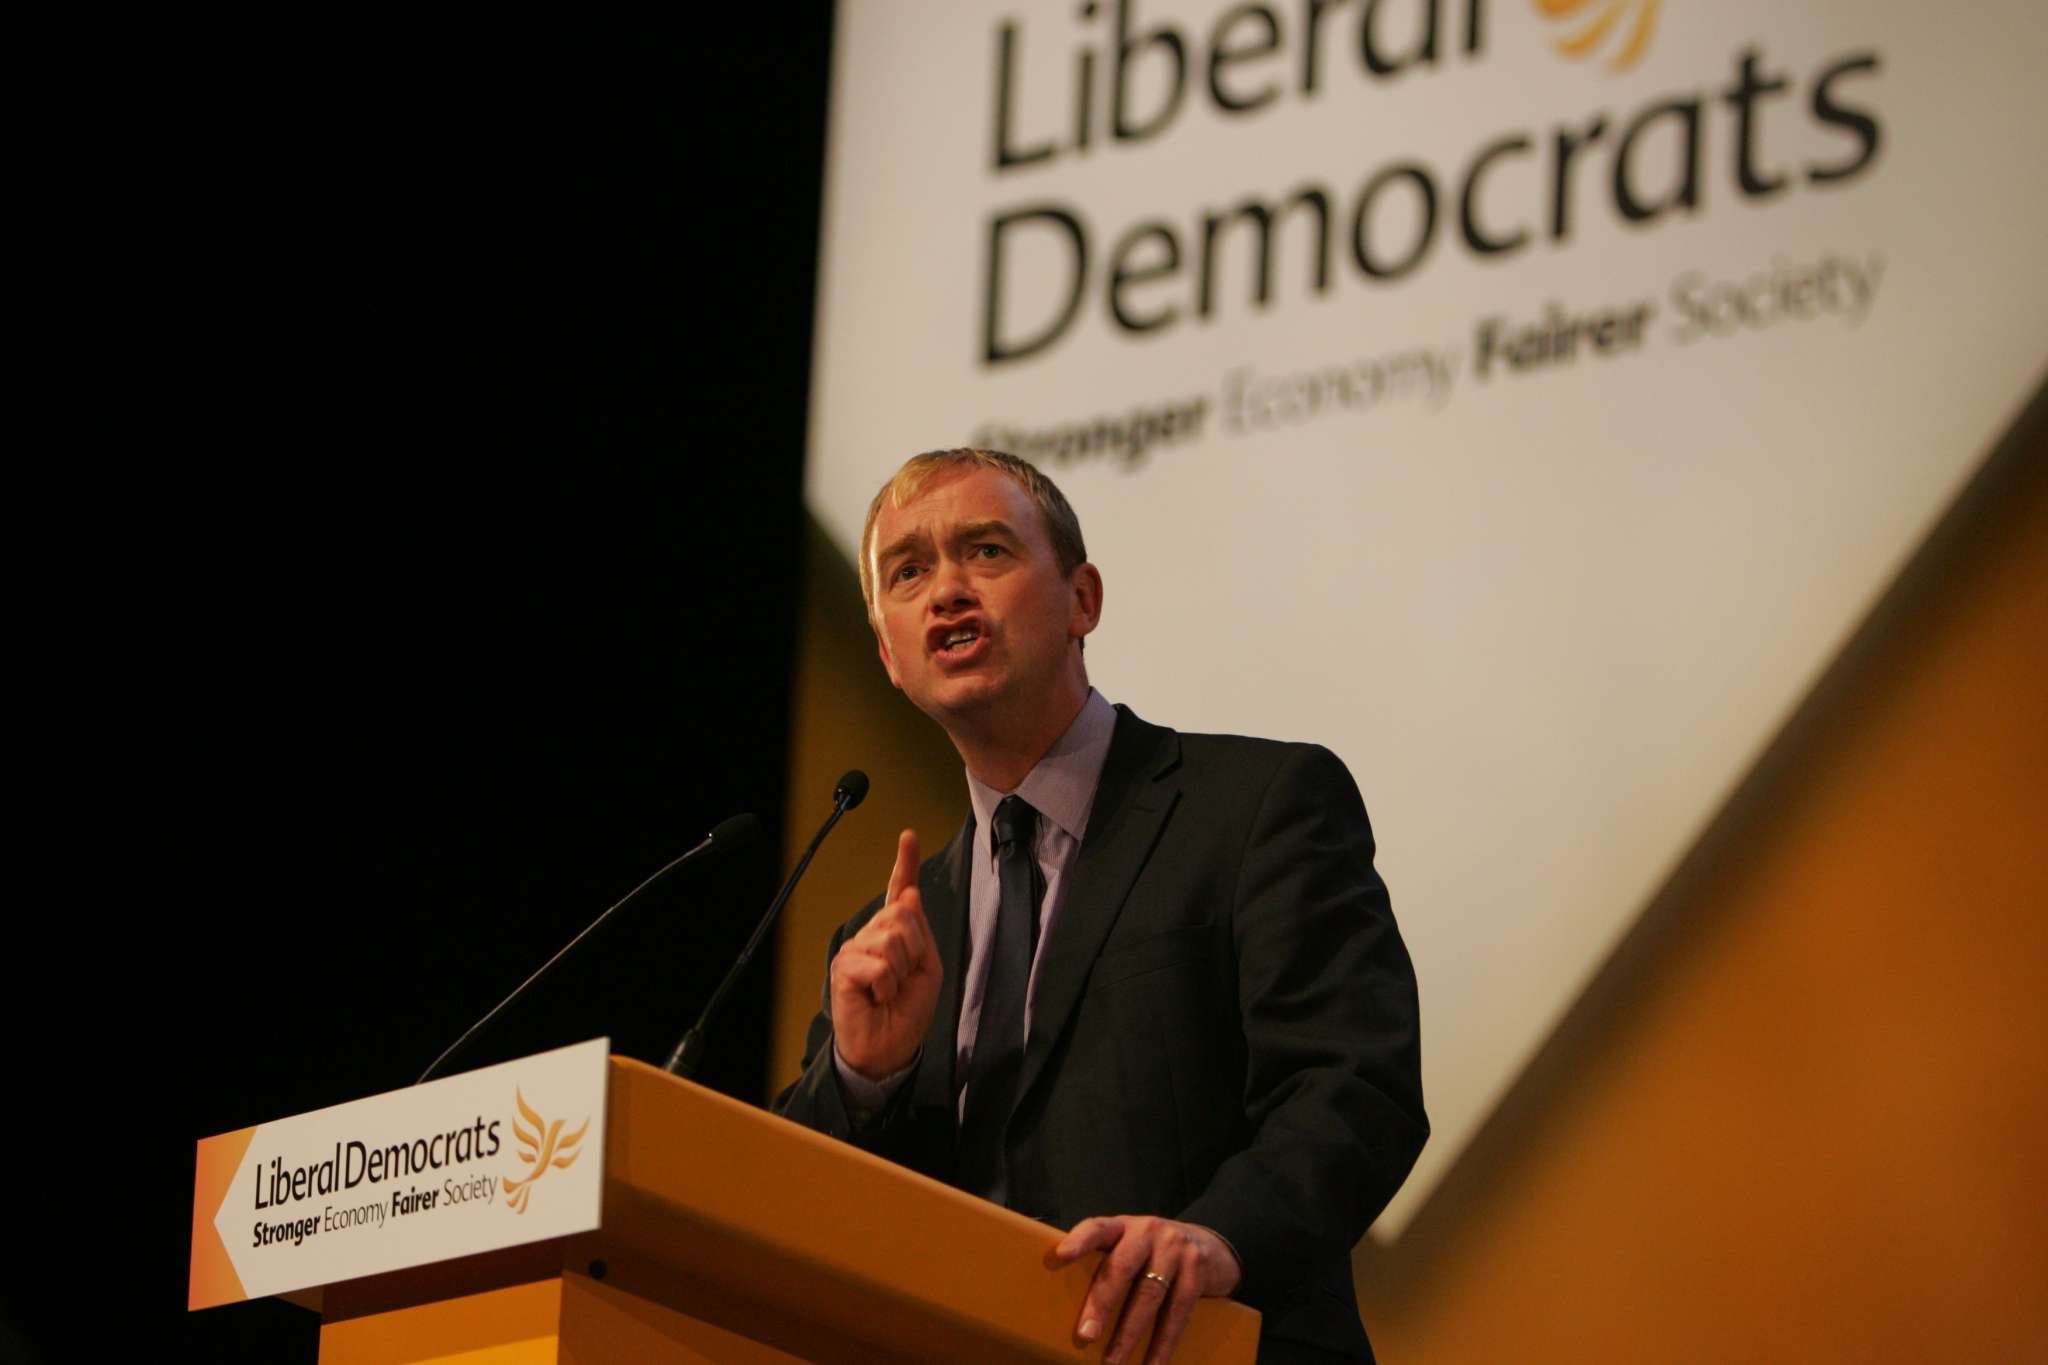 Tim Farron delivers his speech to Lib Dem conference